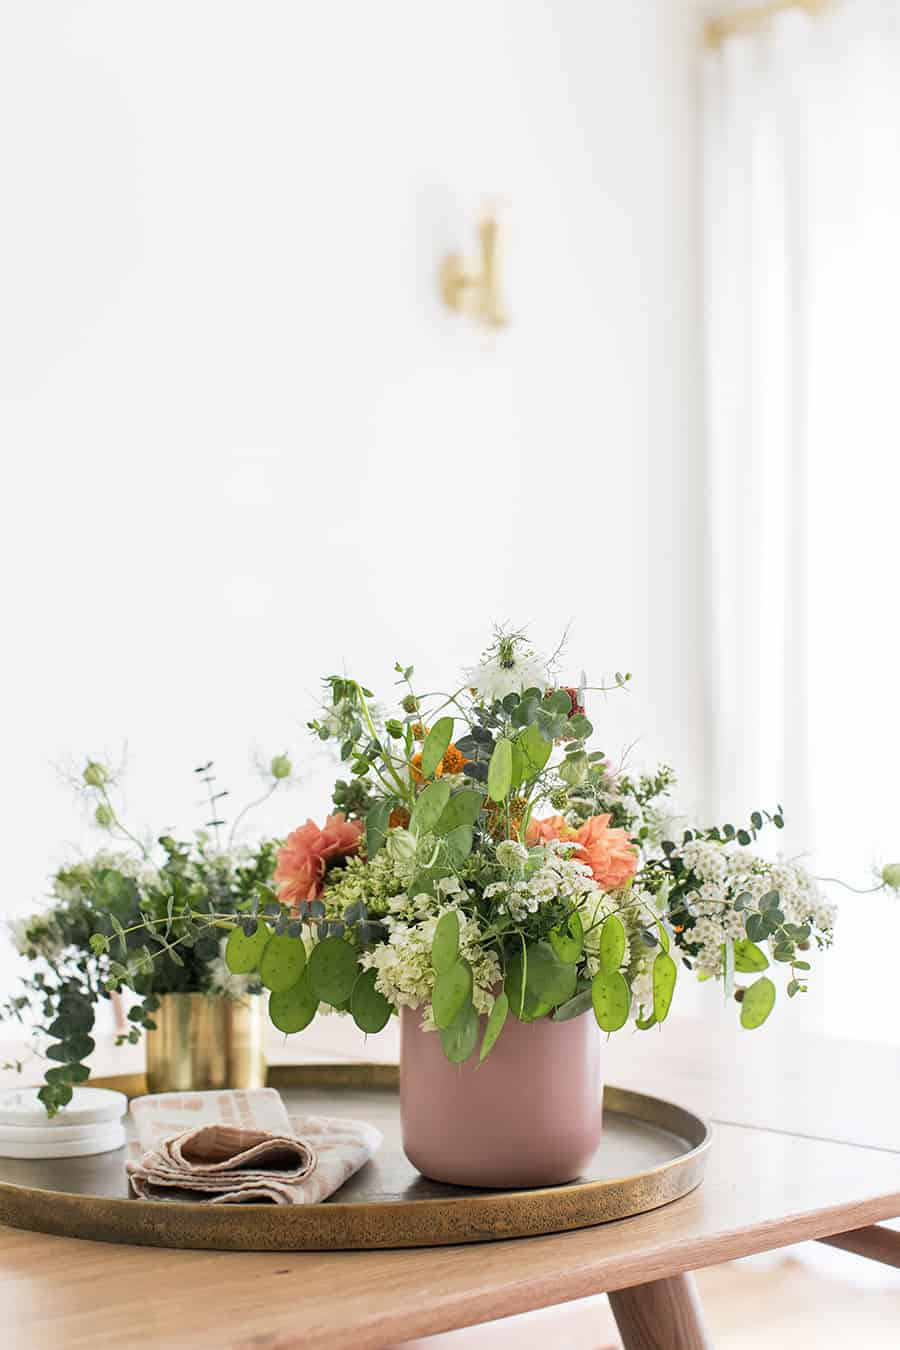 Fresh flowers in a pink vase on a wooden table to create a hygge lifestyle.